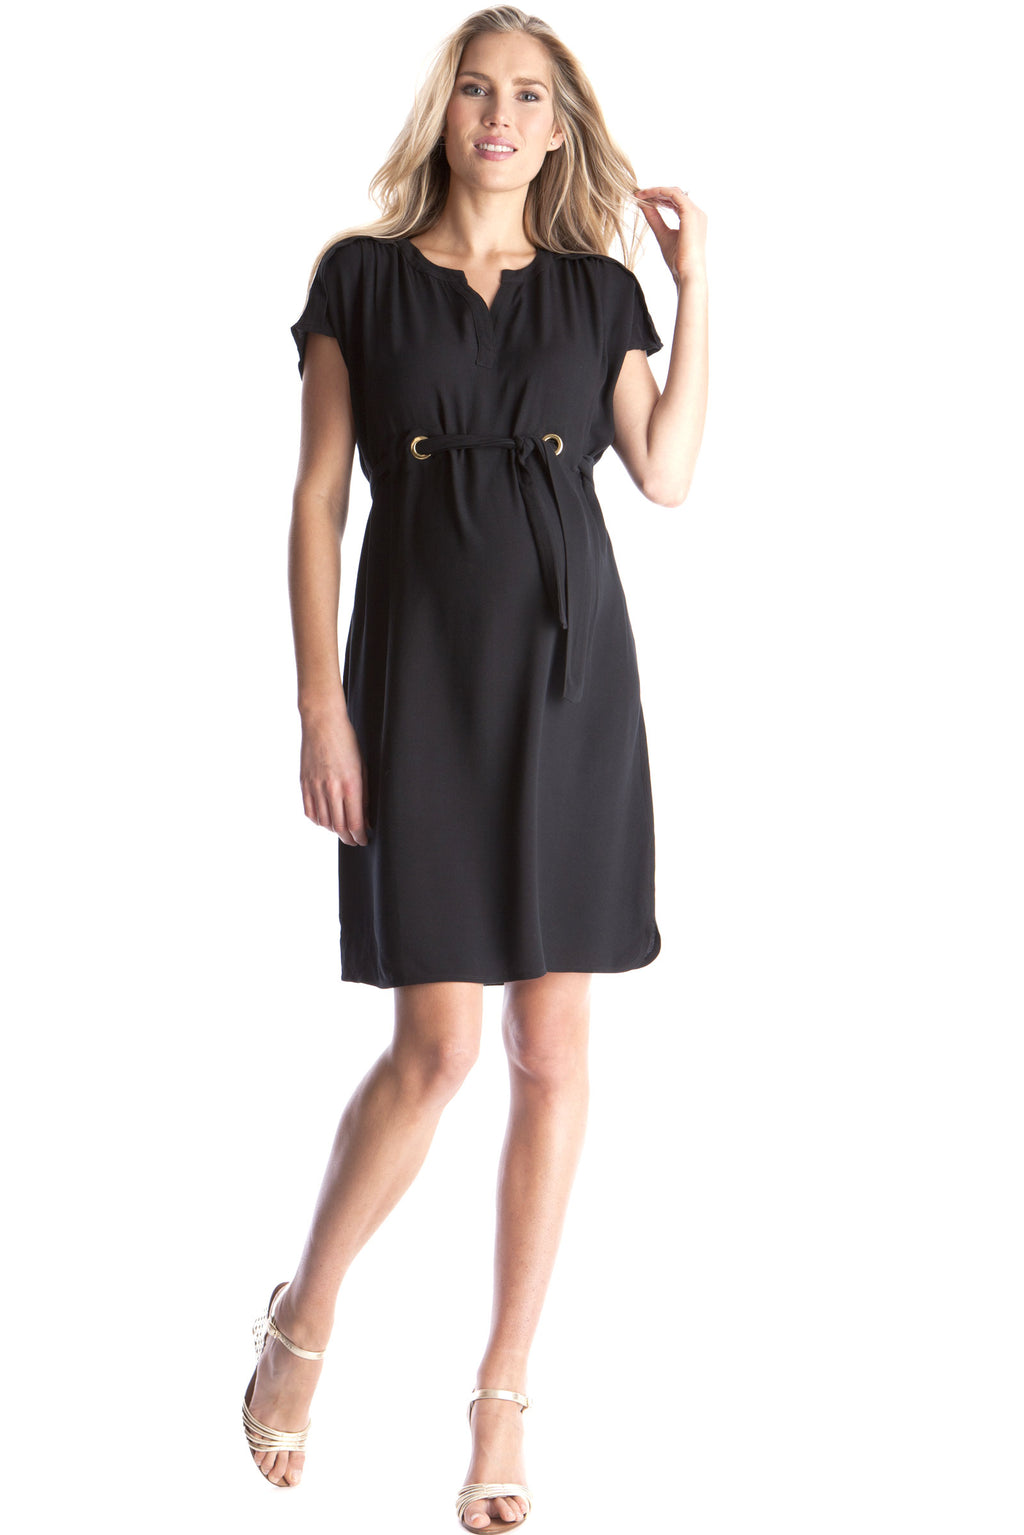 Seraphine Camden Woven Maternity Dress in Caviar